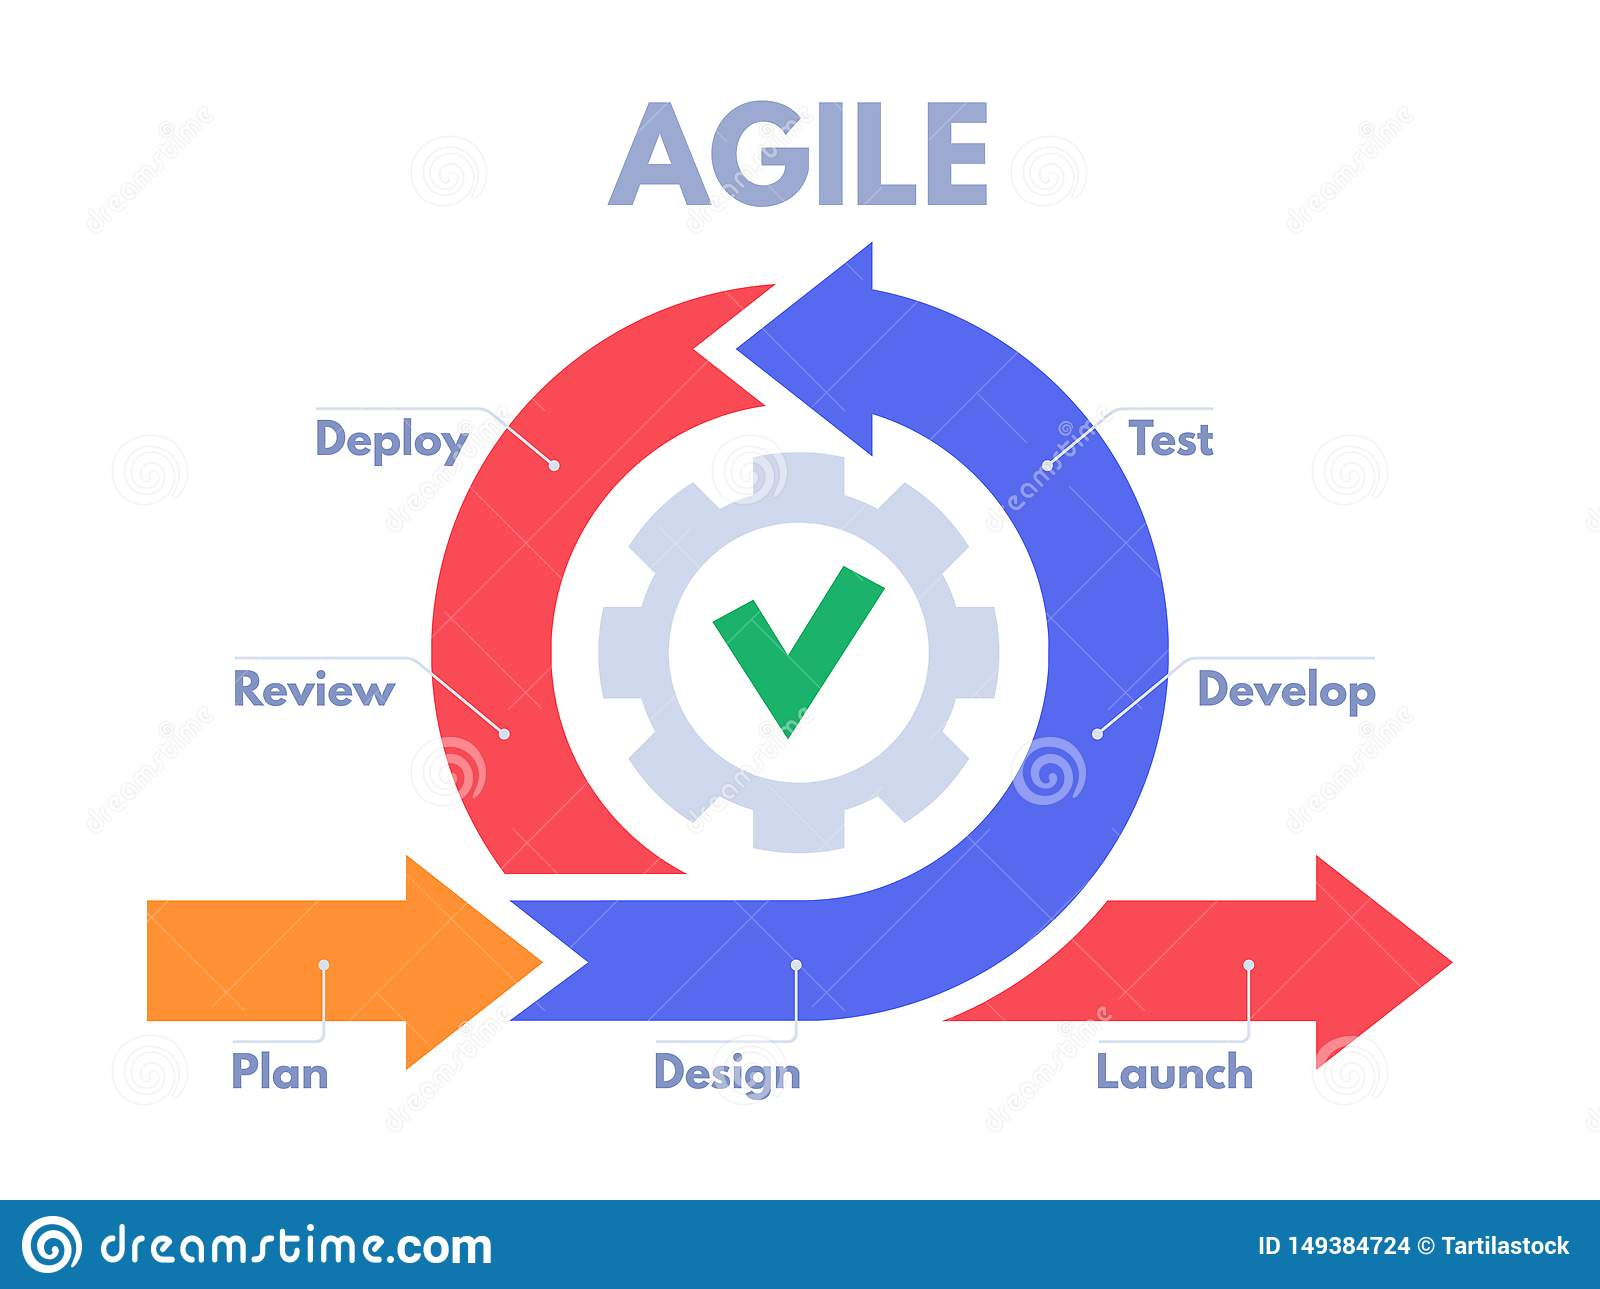 Agile Development Process Infographic  Software Developers